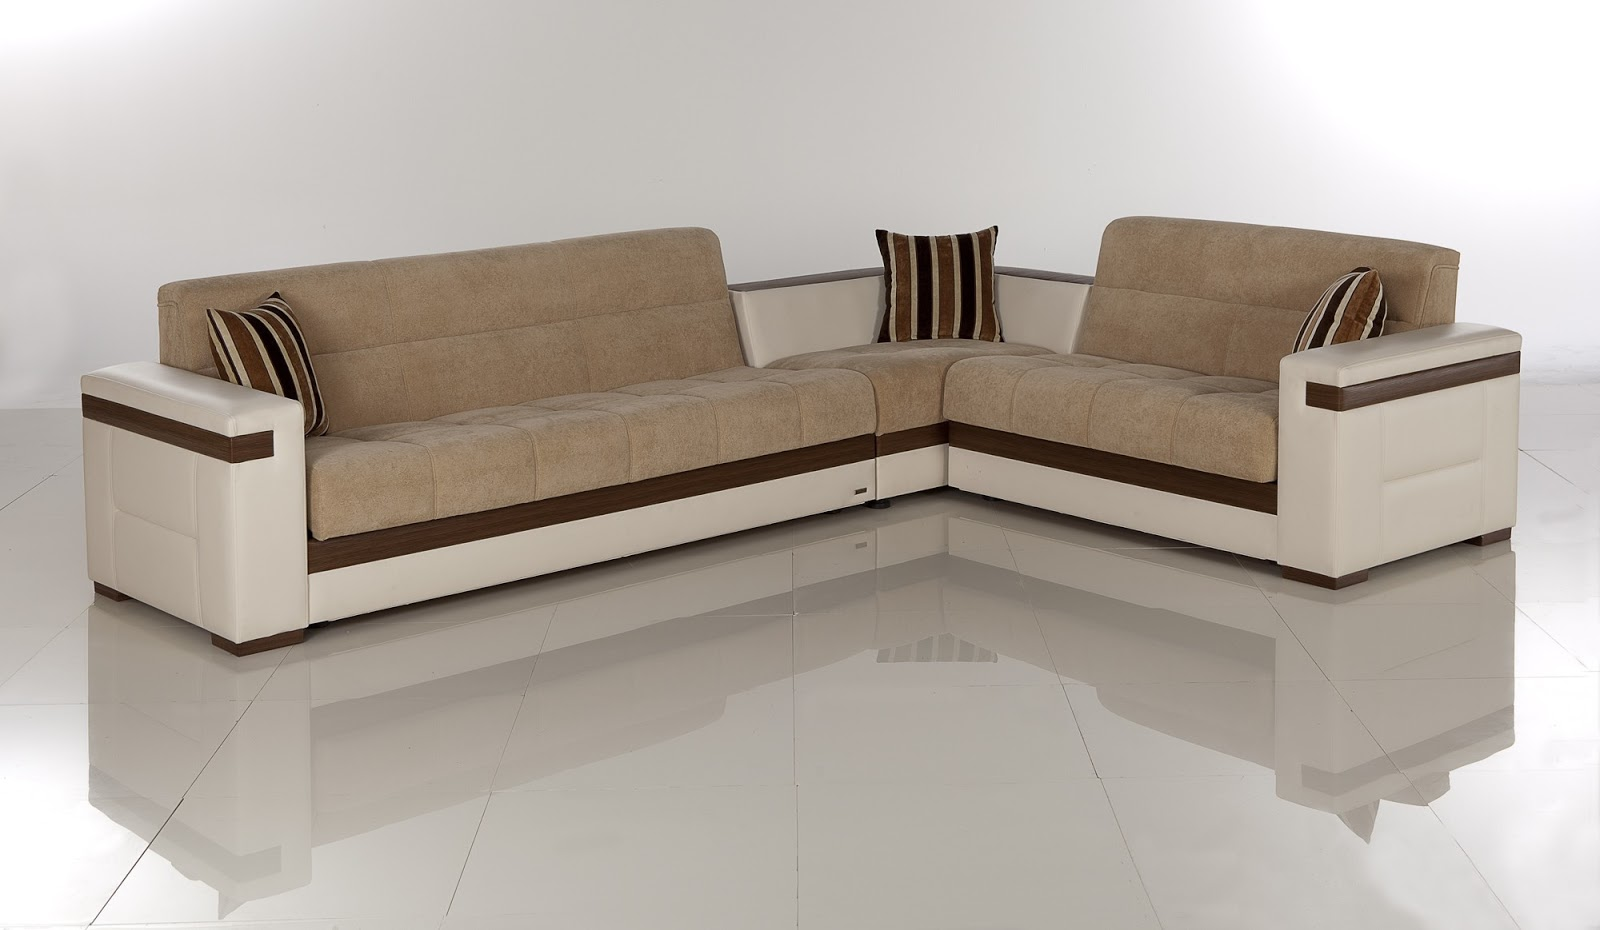 Sofa designs ideas home and design Sofa design ideas photos